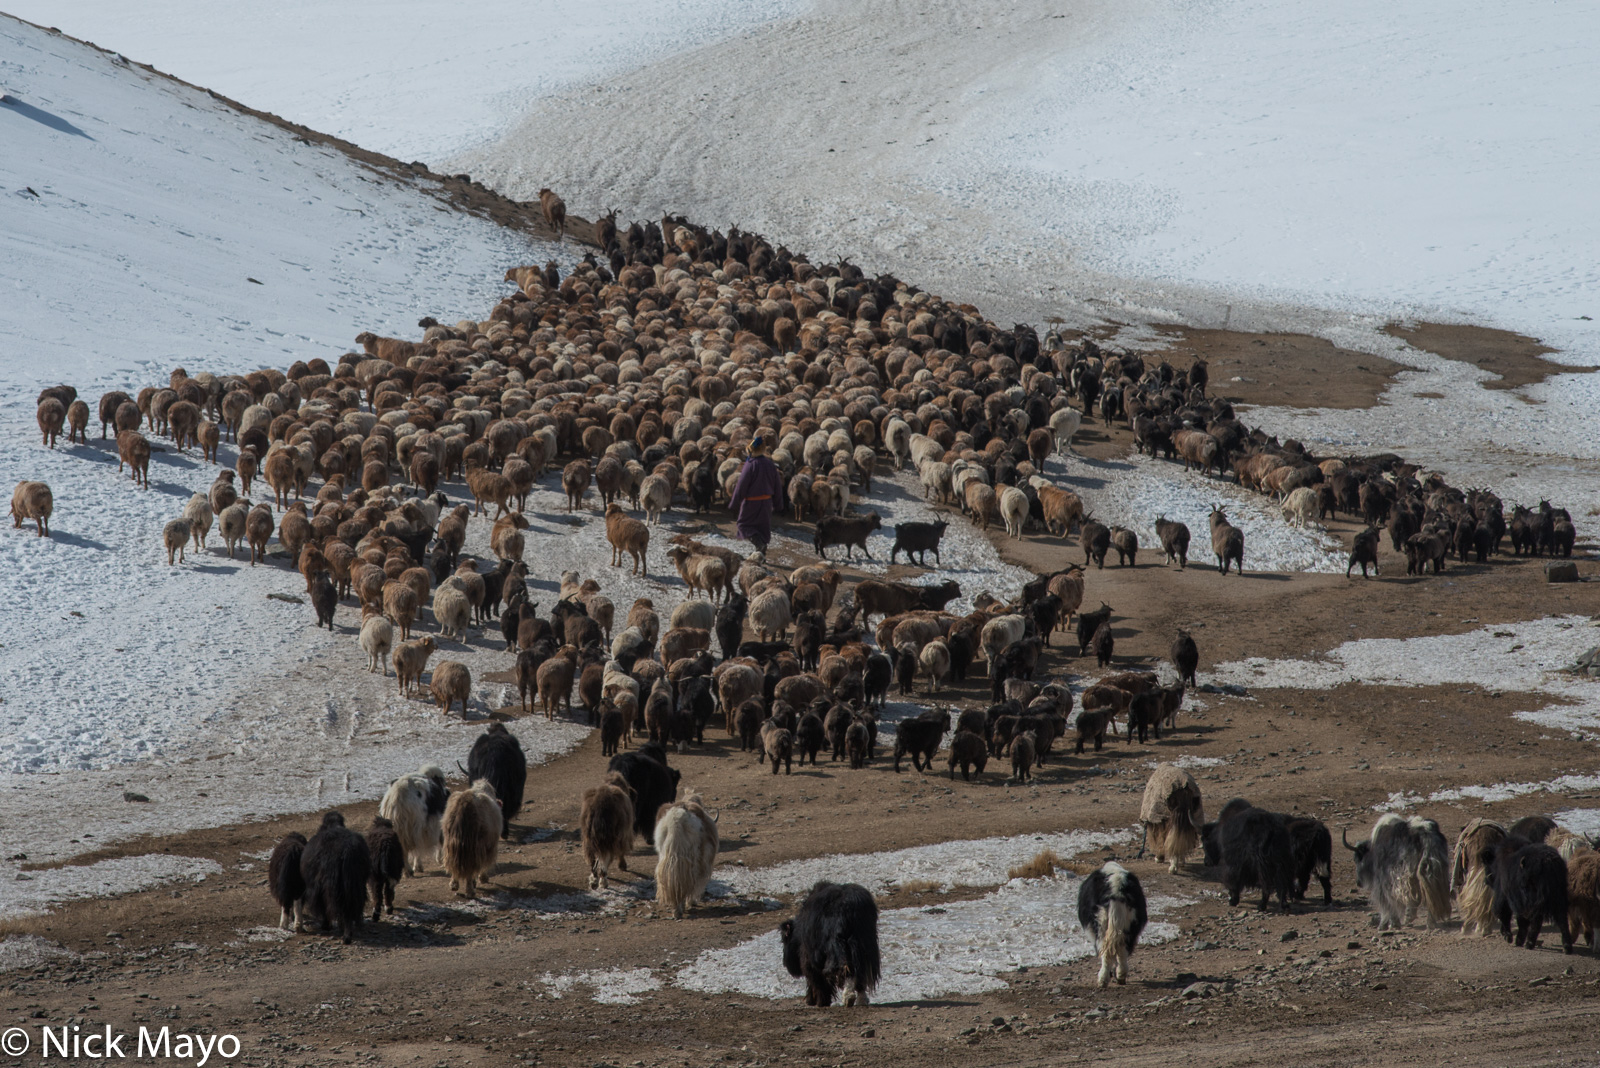 A Kazakh herding sheep, goats and yaks down a pass in Sagsai sum during the spring migration.